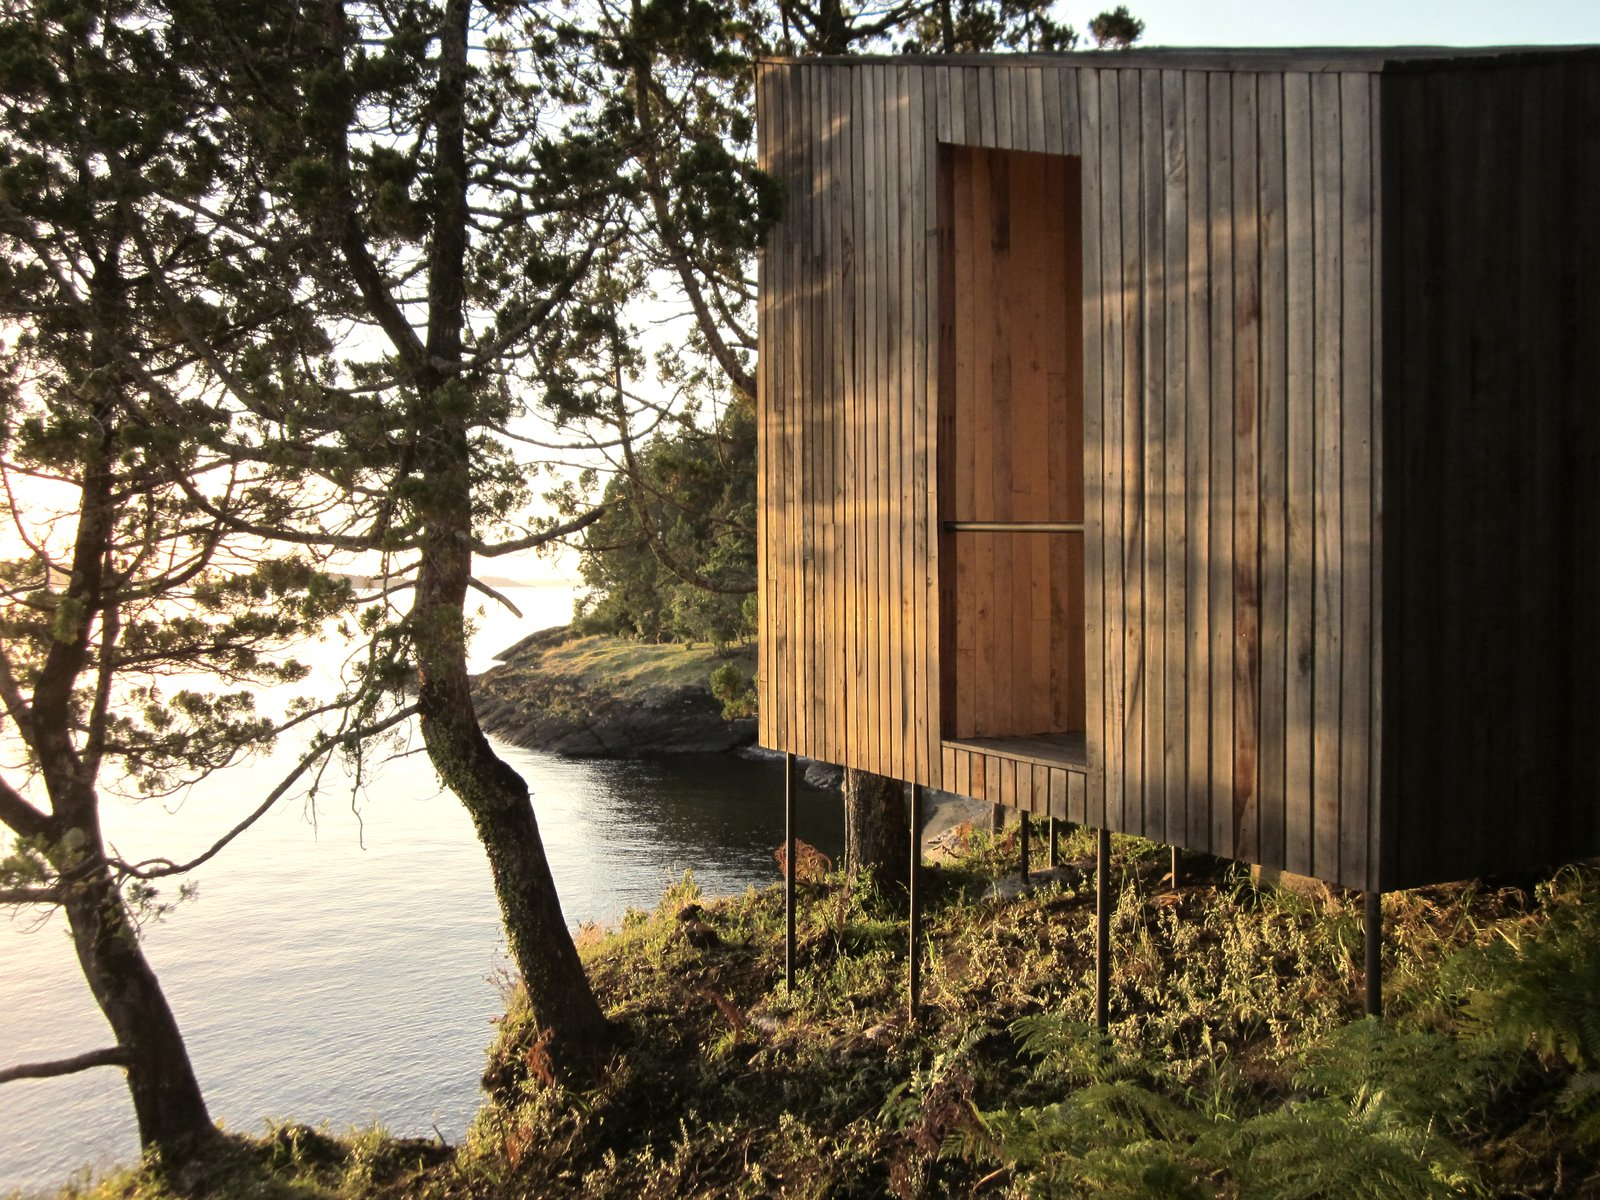 Photo 9 of 9 in A Timber-Clad Sauna in Chile Angles For Lakeside Views